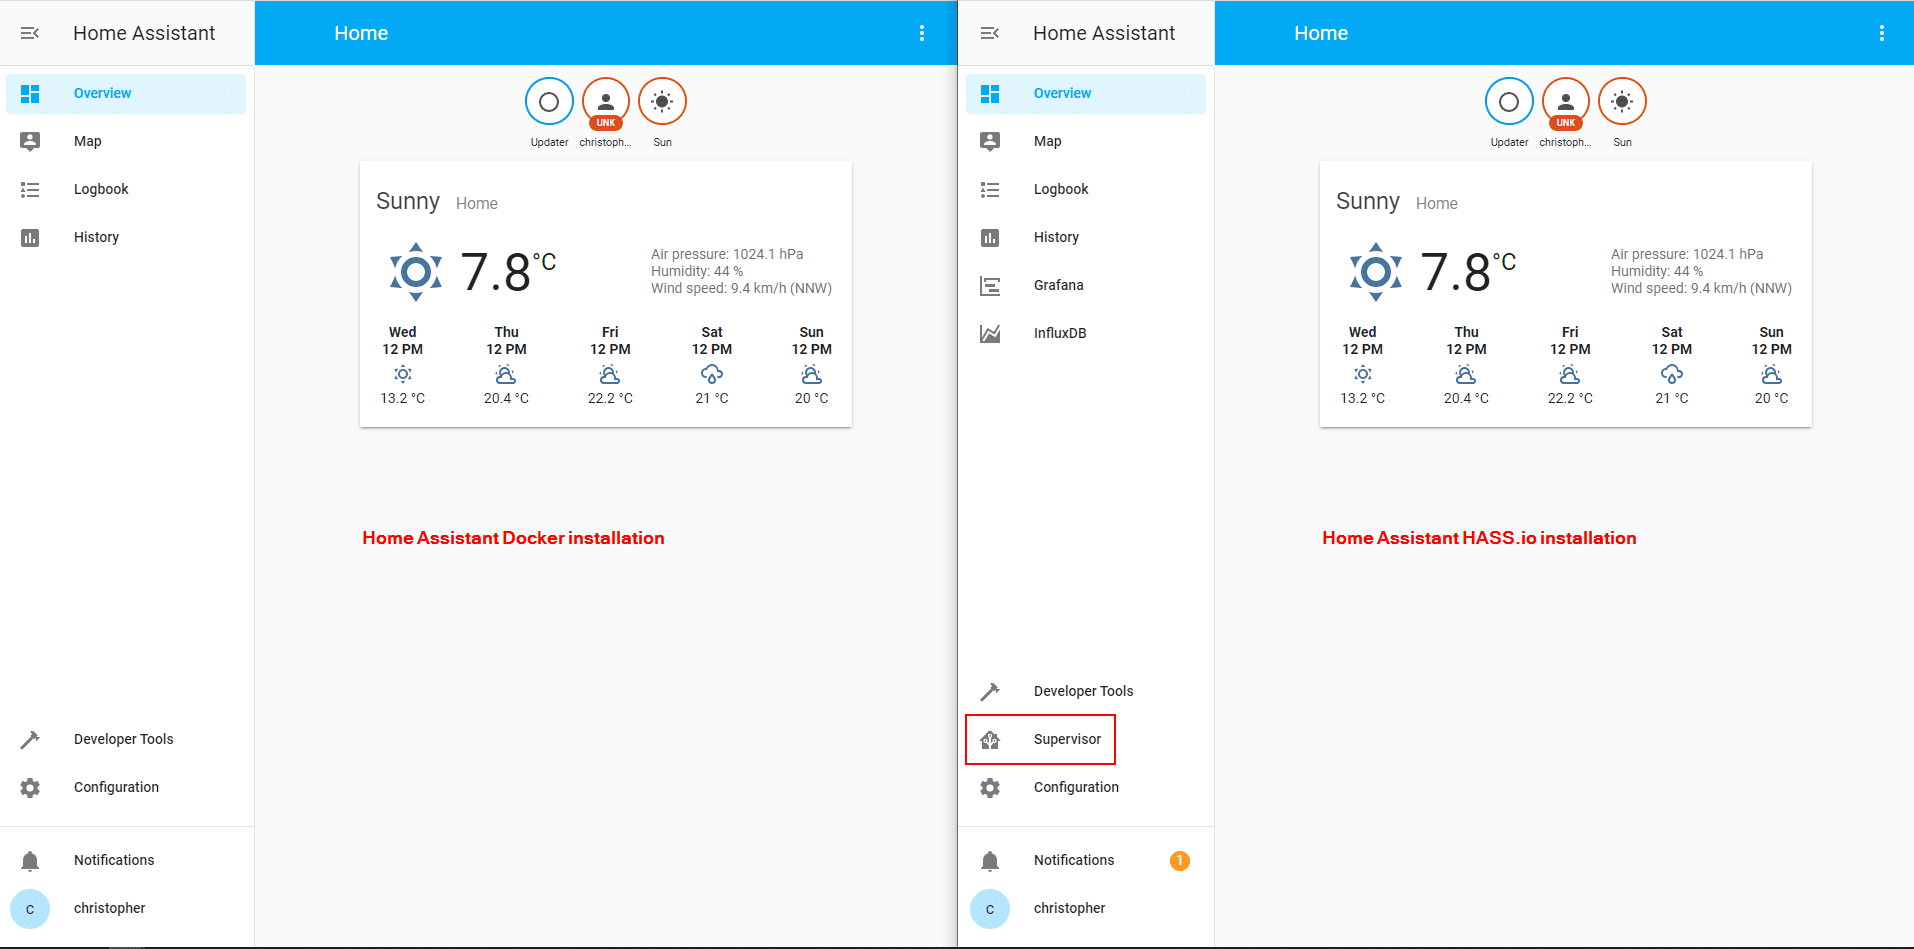 Home Assistant HASSio vs Docker